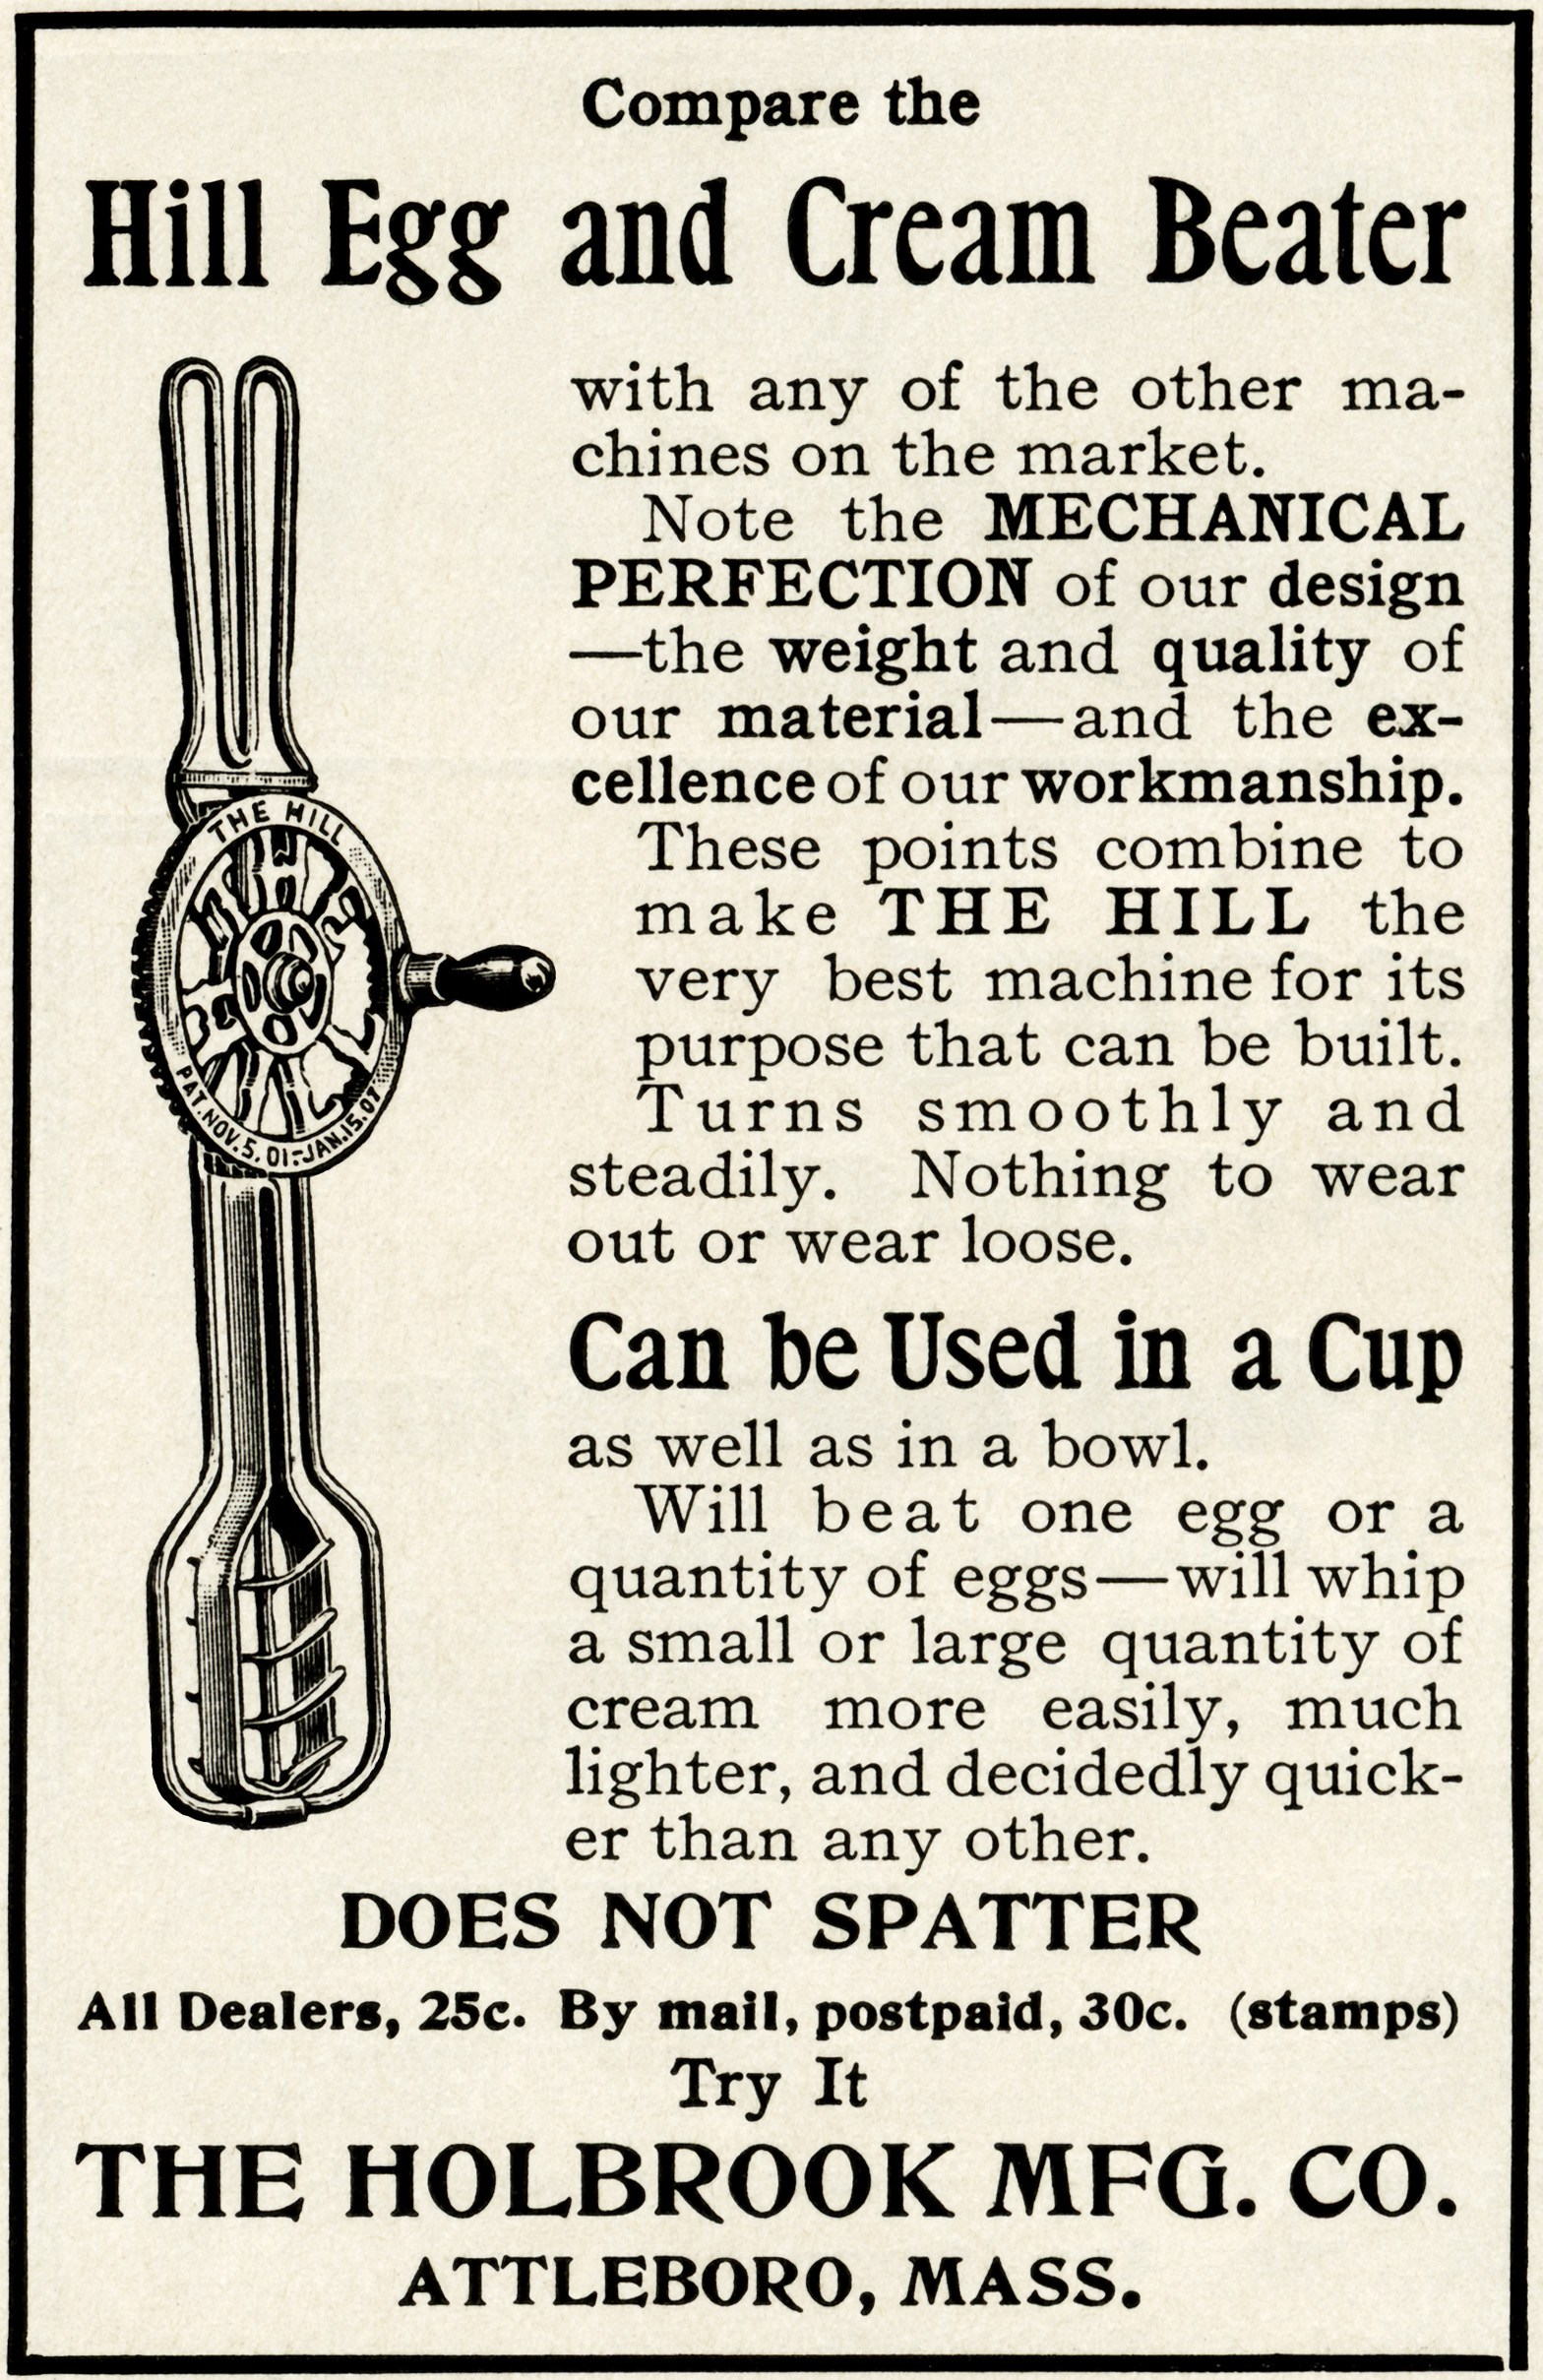 vintage mixer ad, holbrook mfg co beater, old fashioned mixer.